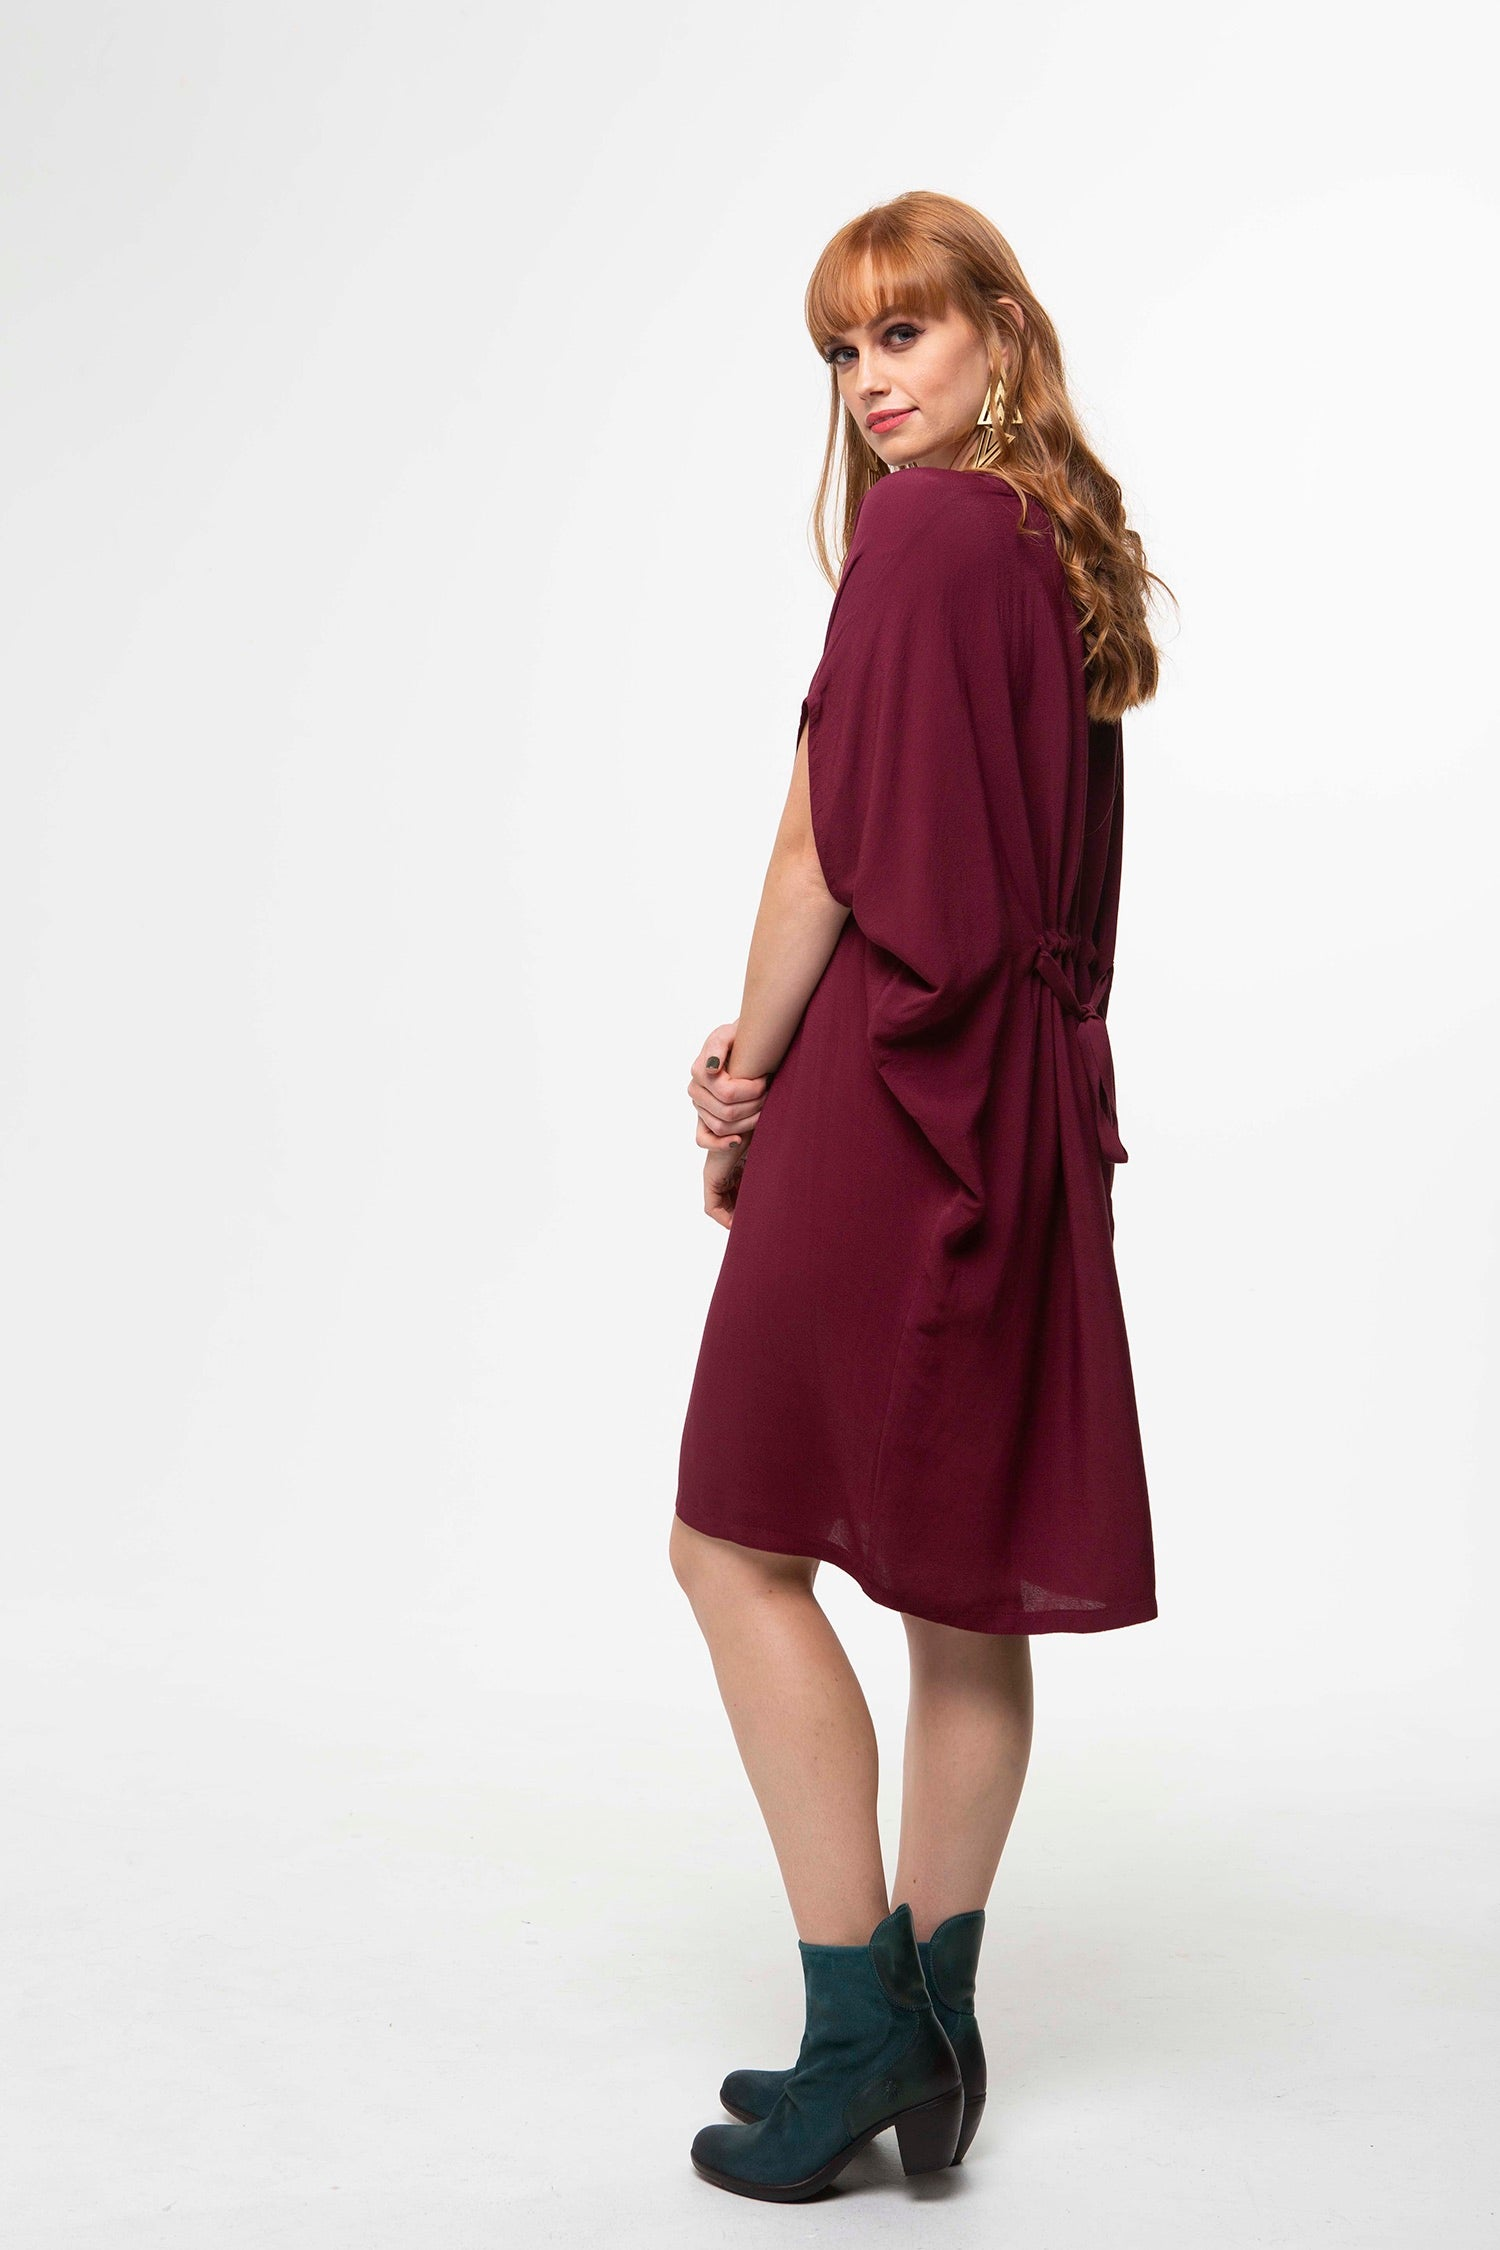 Juna Papillion Dress - Wine